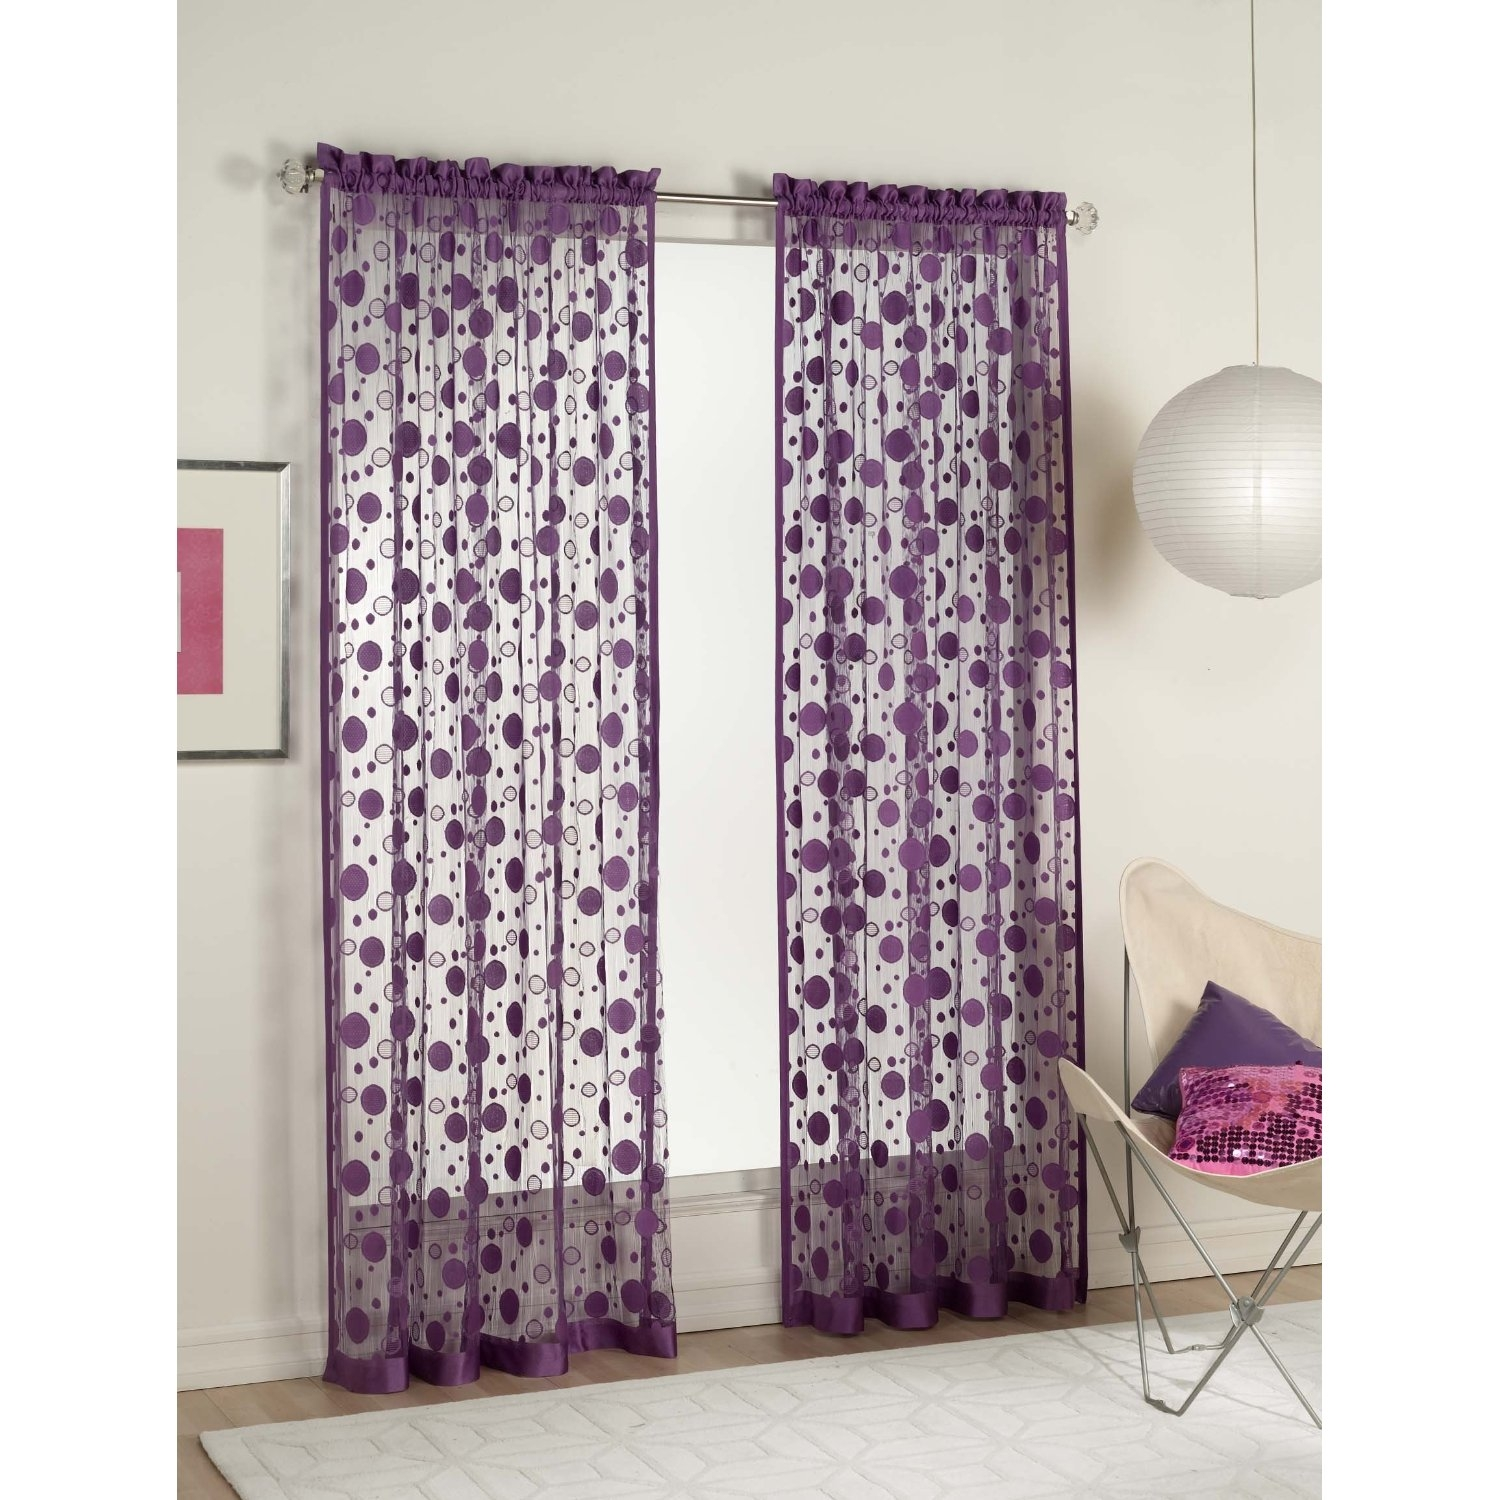 Ba Nursery Decorative Window Curtains For Room Decors Green Regarding Purple Curtains For Kids Room (Image 3 of 25)